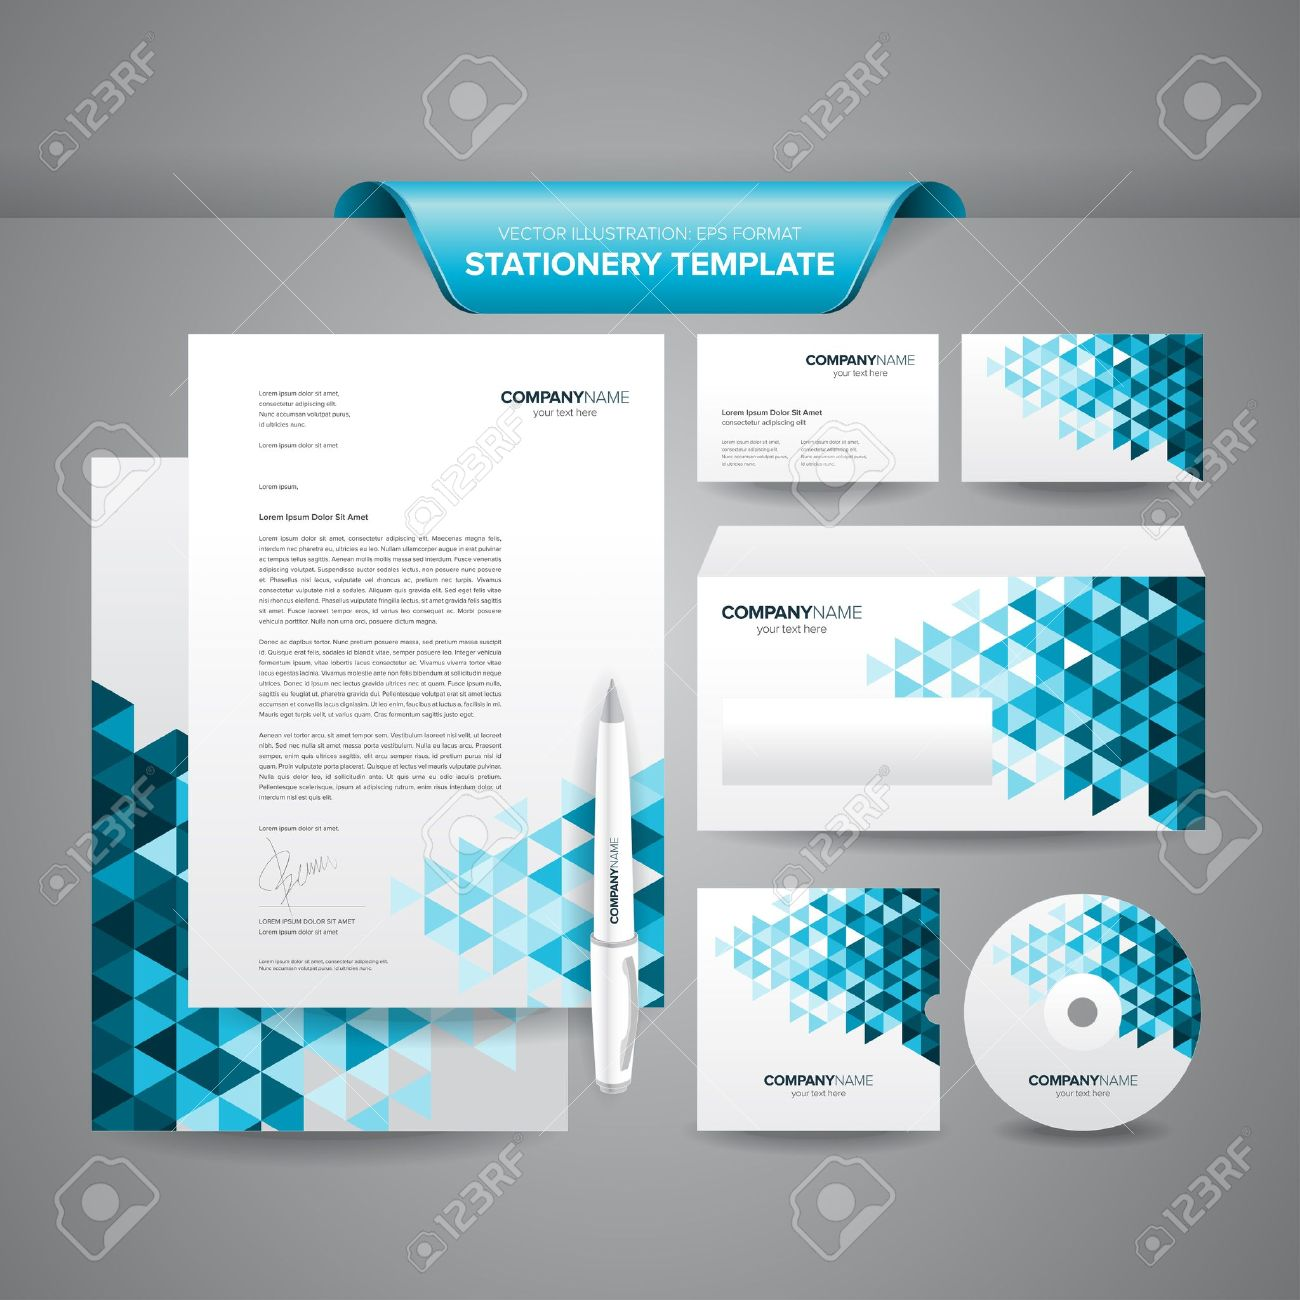 Complete set of business stationery template such as letterhead complete set of business stationery template such as letterhead envelope business card etc flashek Gallery